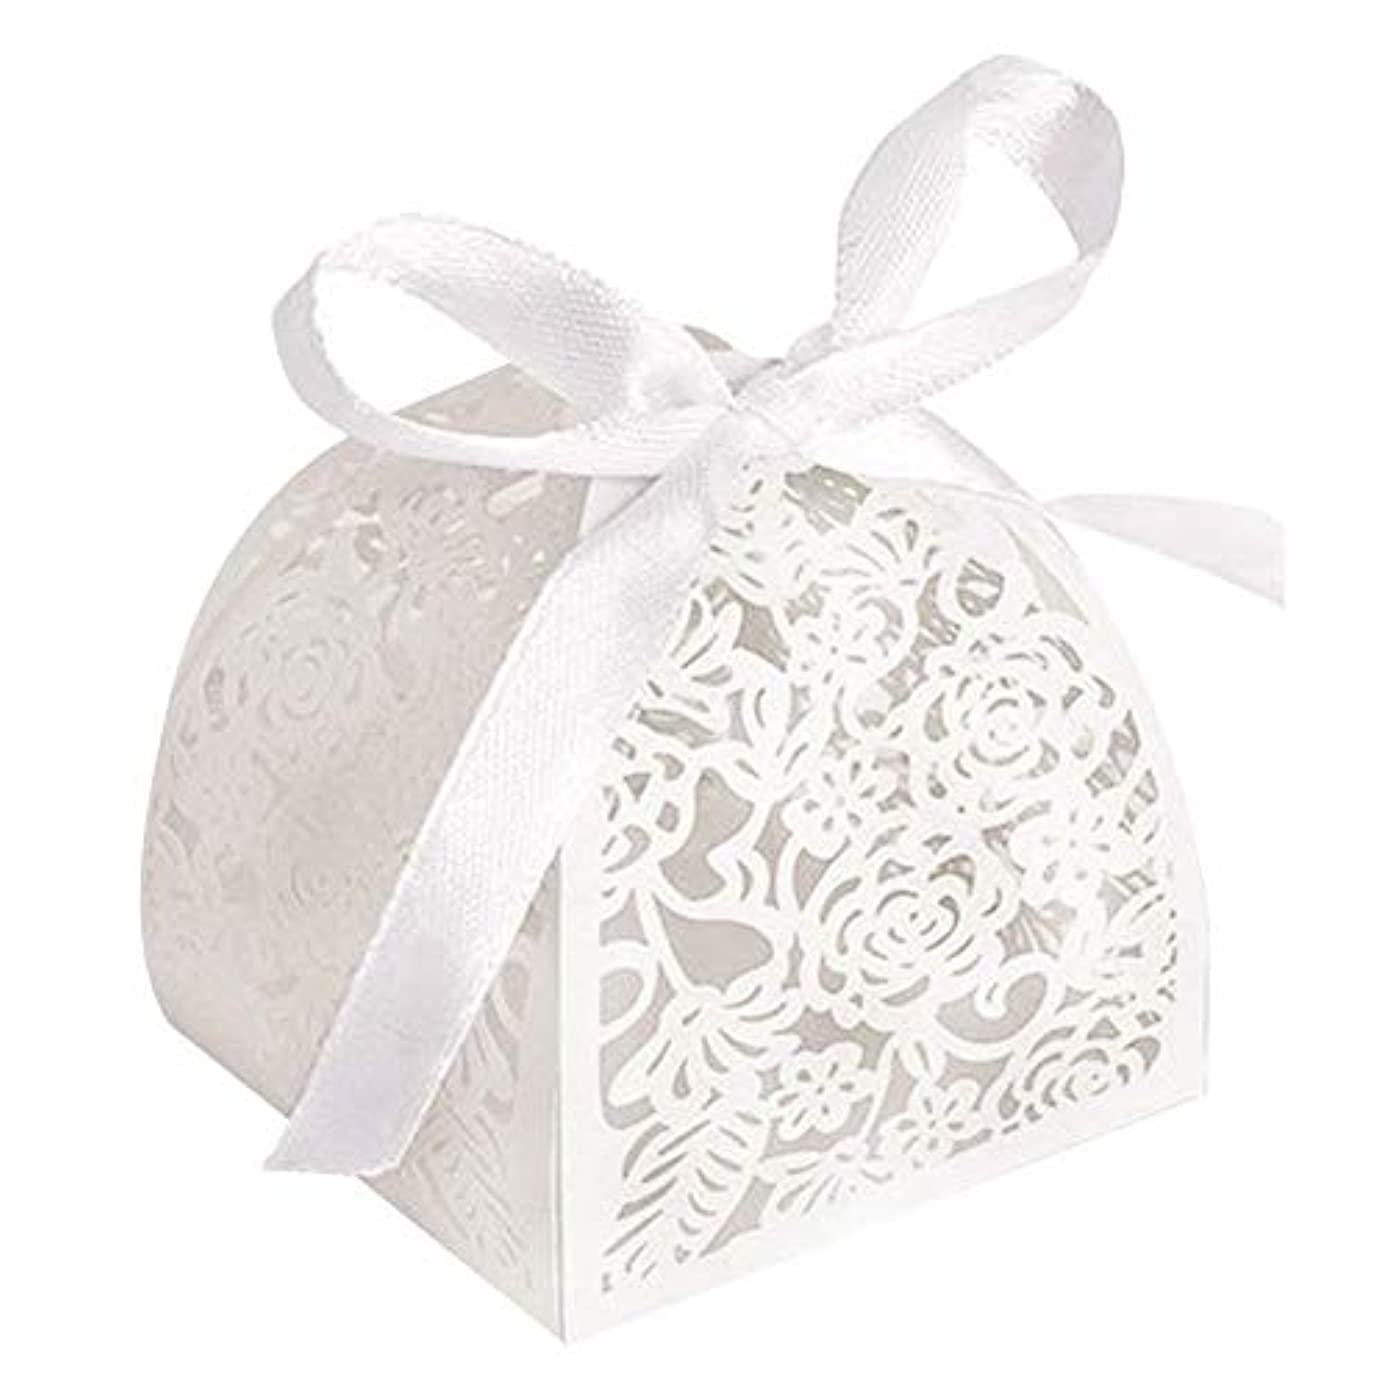 YOZATIA 50pcs Laser Cut Rose Candy Boxes, 2.6''x2.6''x2.8'' Gift Boxes for Anniverary Party Wedding Favor(White)